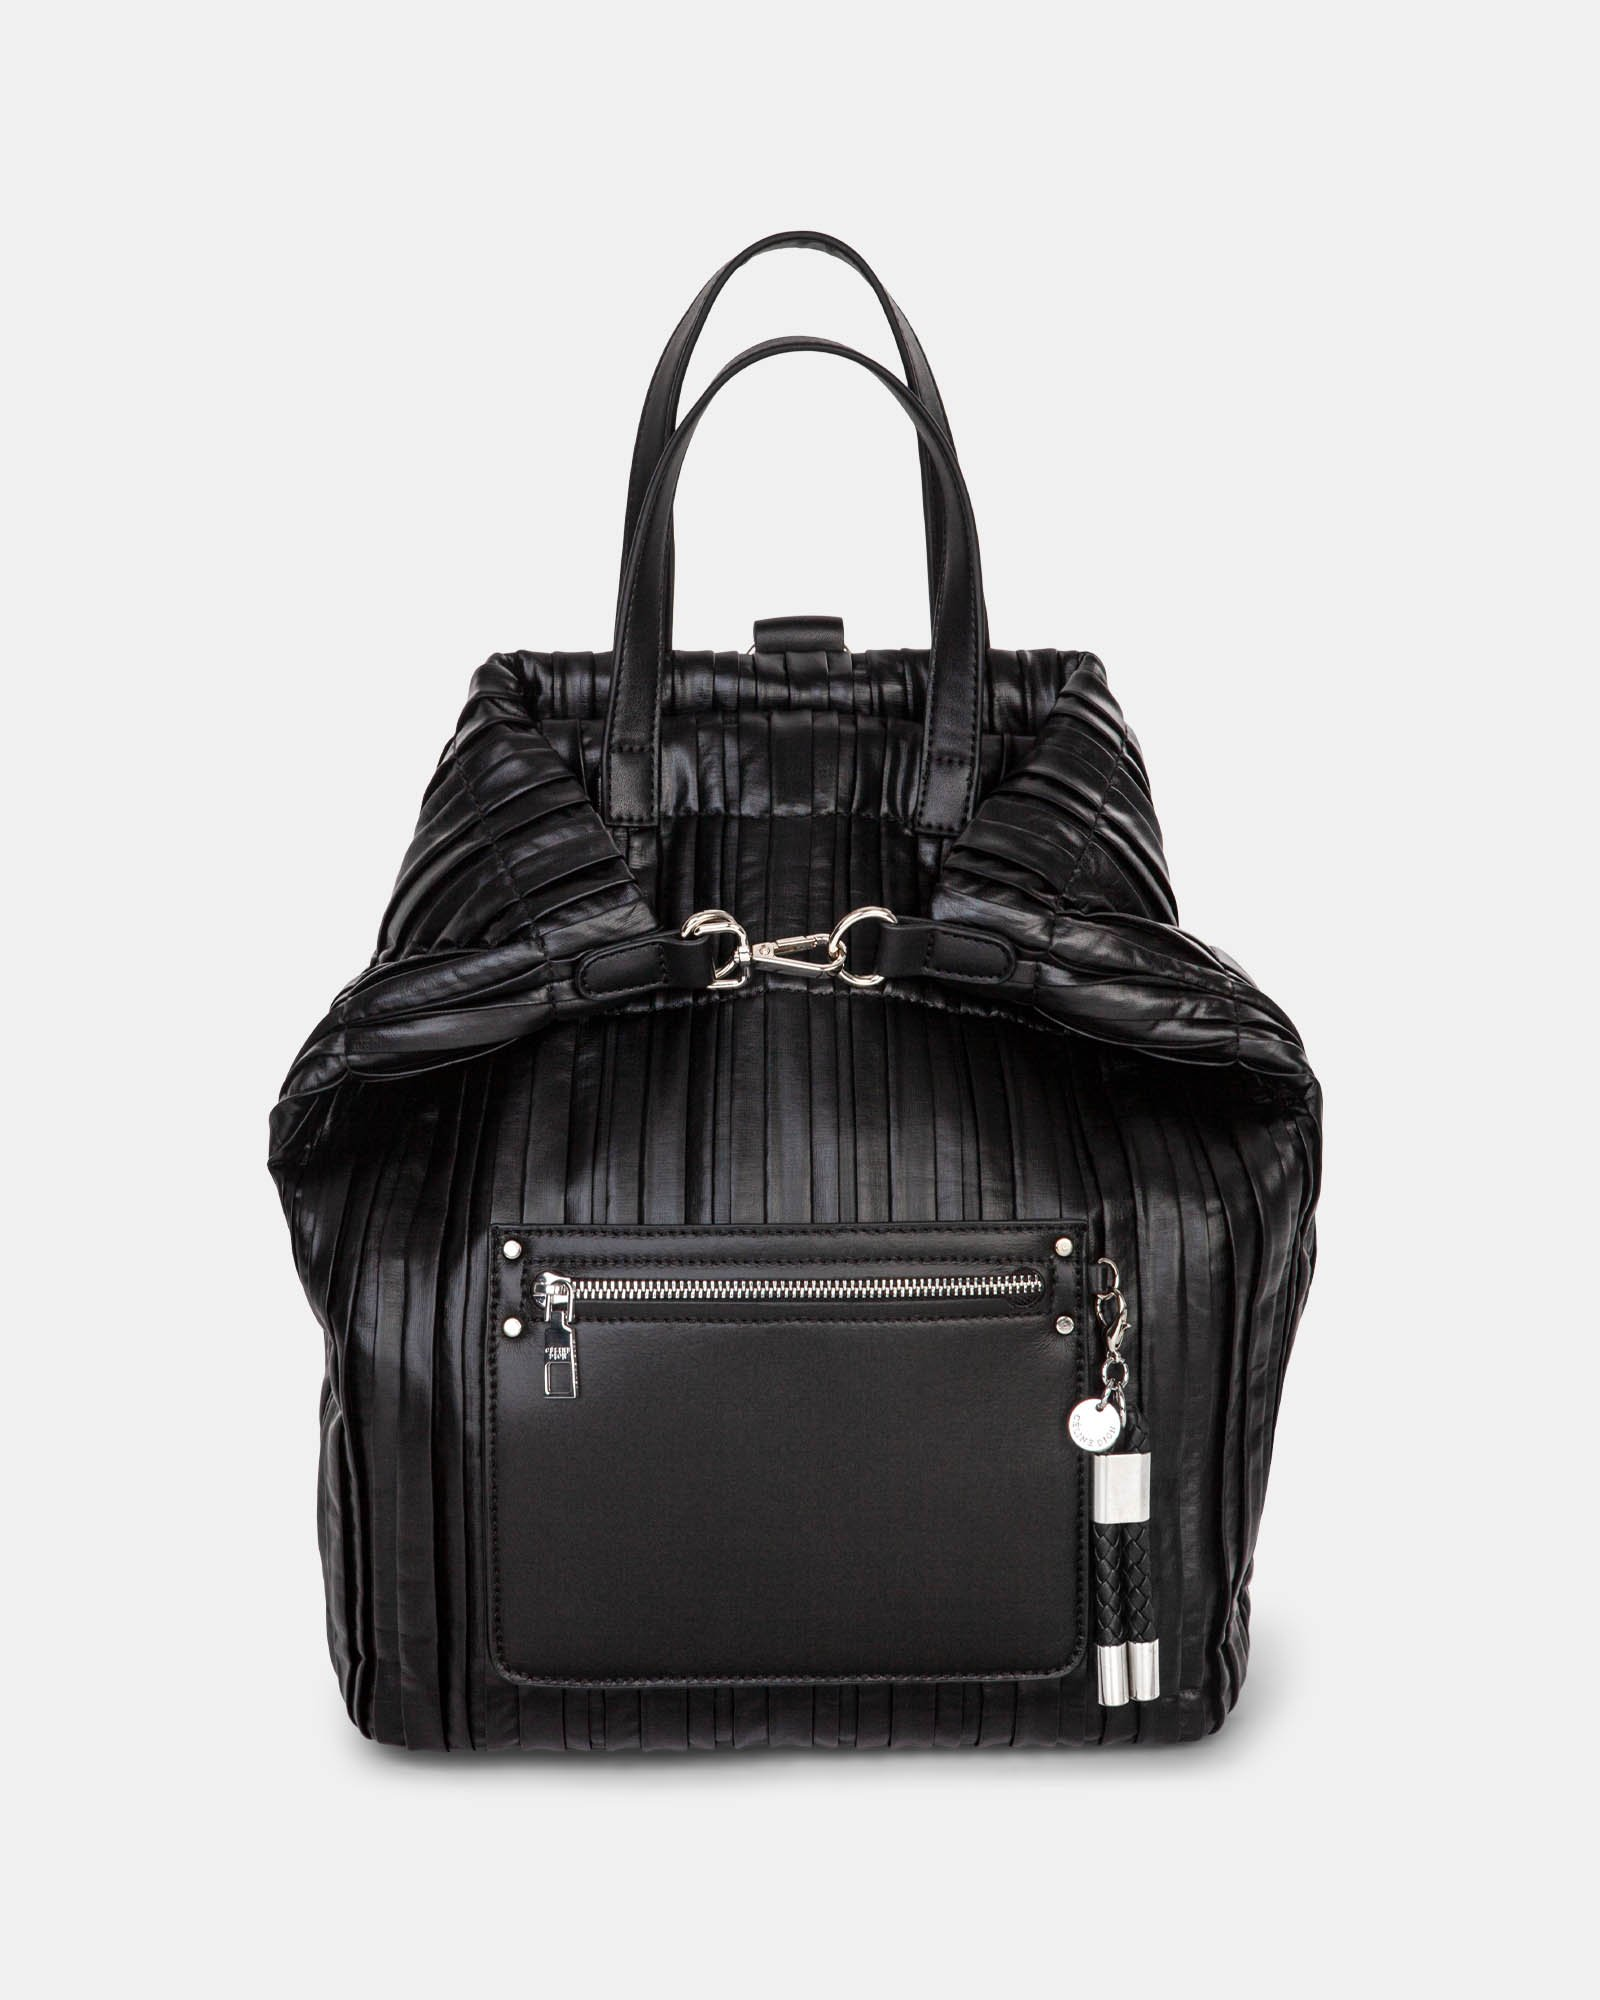 Largo - Backpack with Removable and adjustable crossbody strap - Black - Céline Dion - Zoom